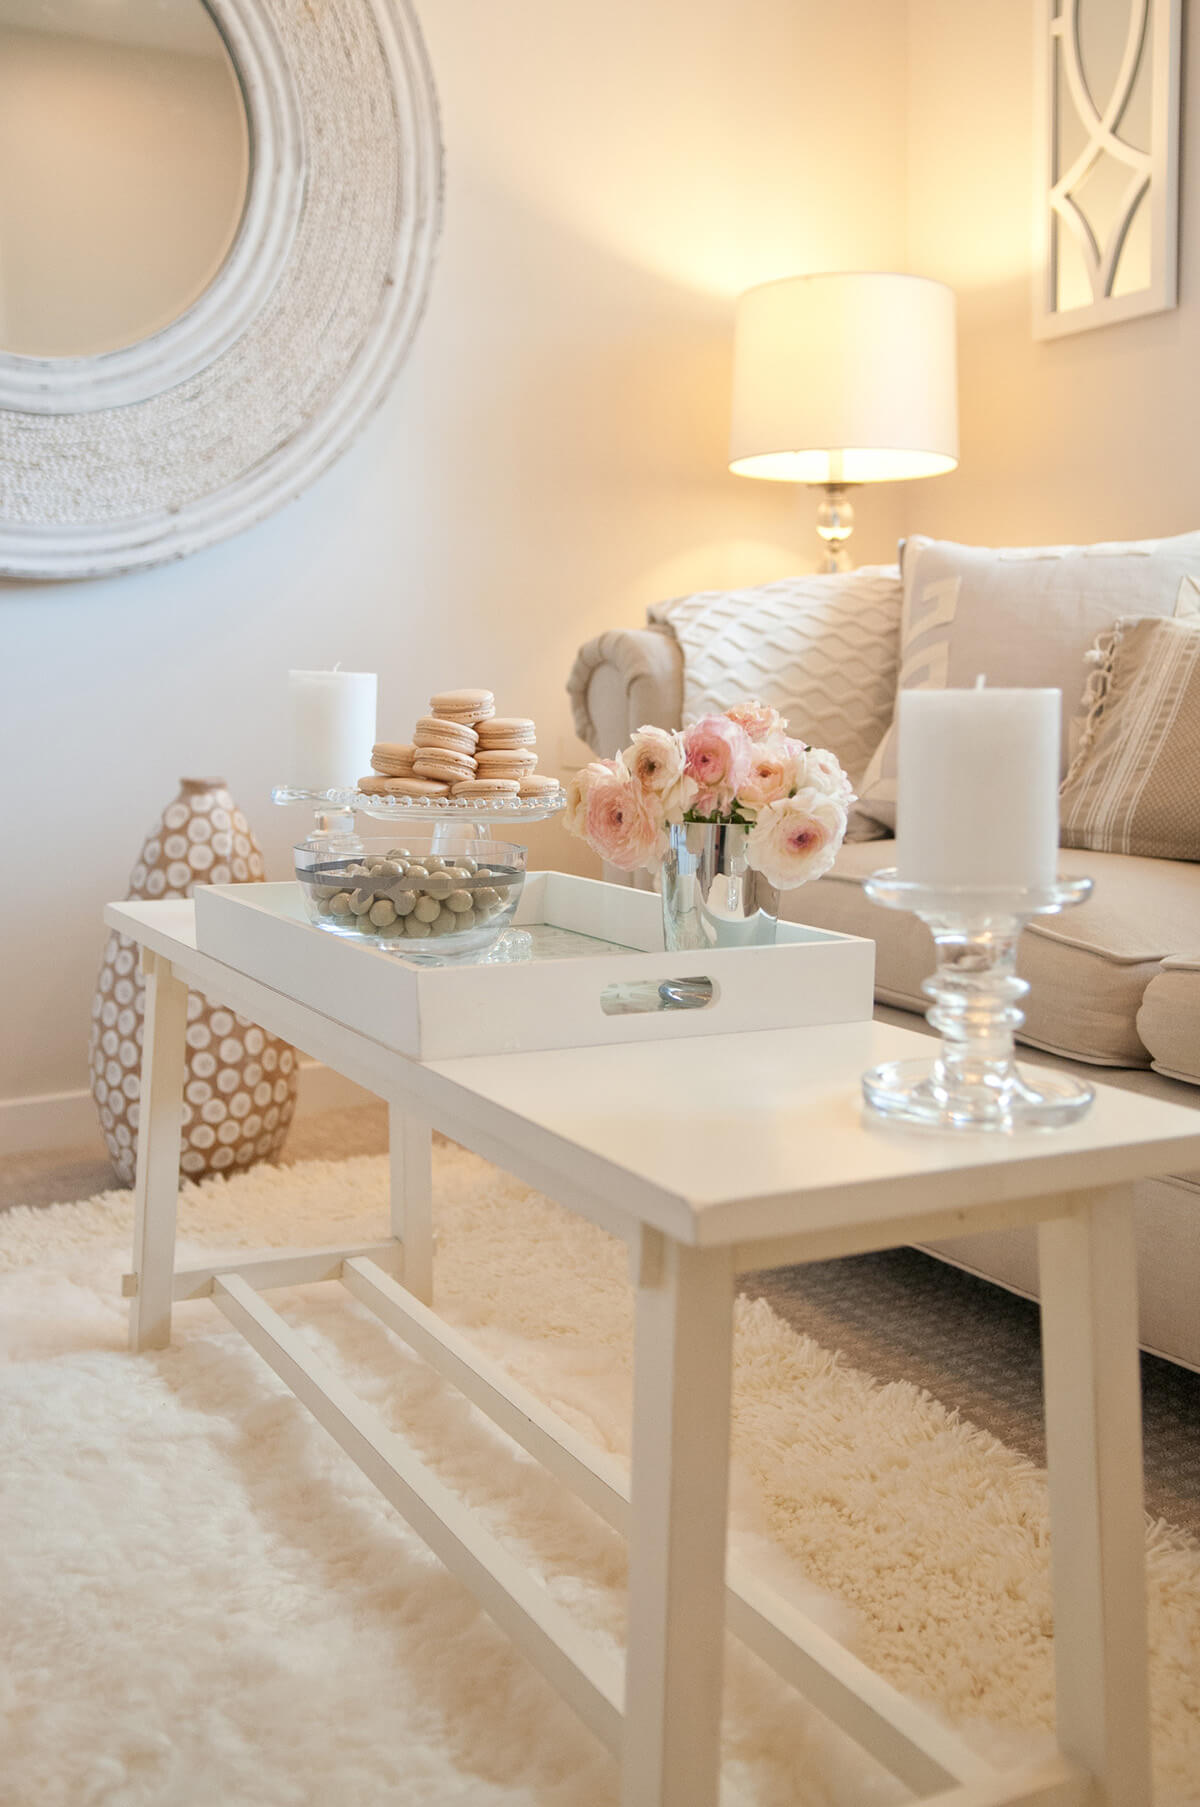 Accent Table Decor Ideas 15 Tips For A Unique Coffee Table Decor And Photos